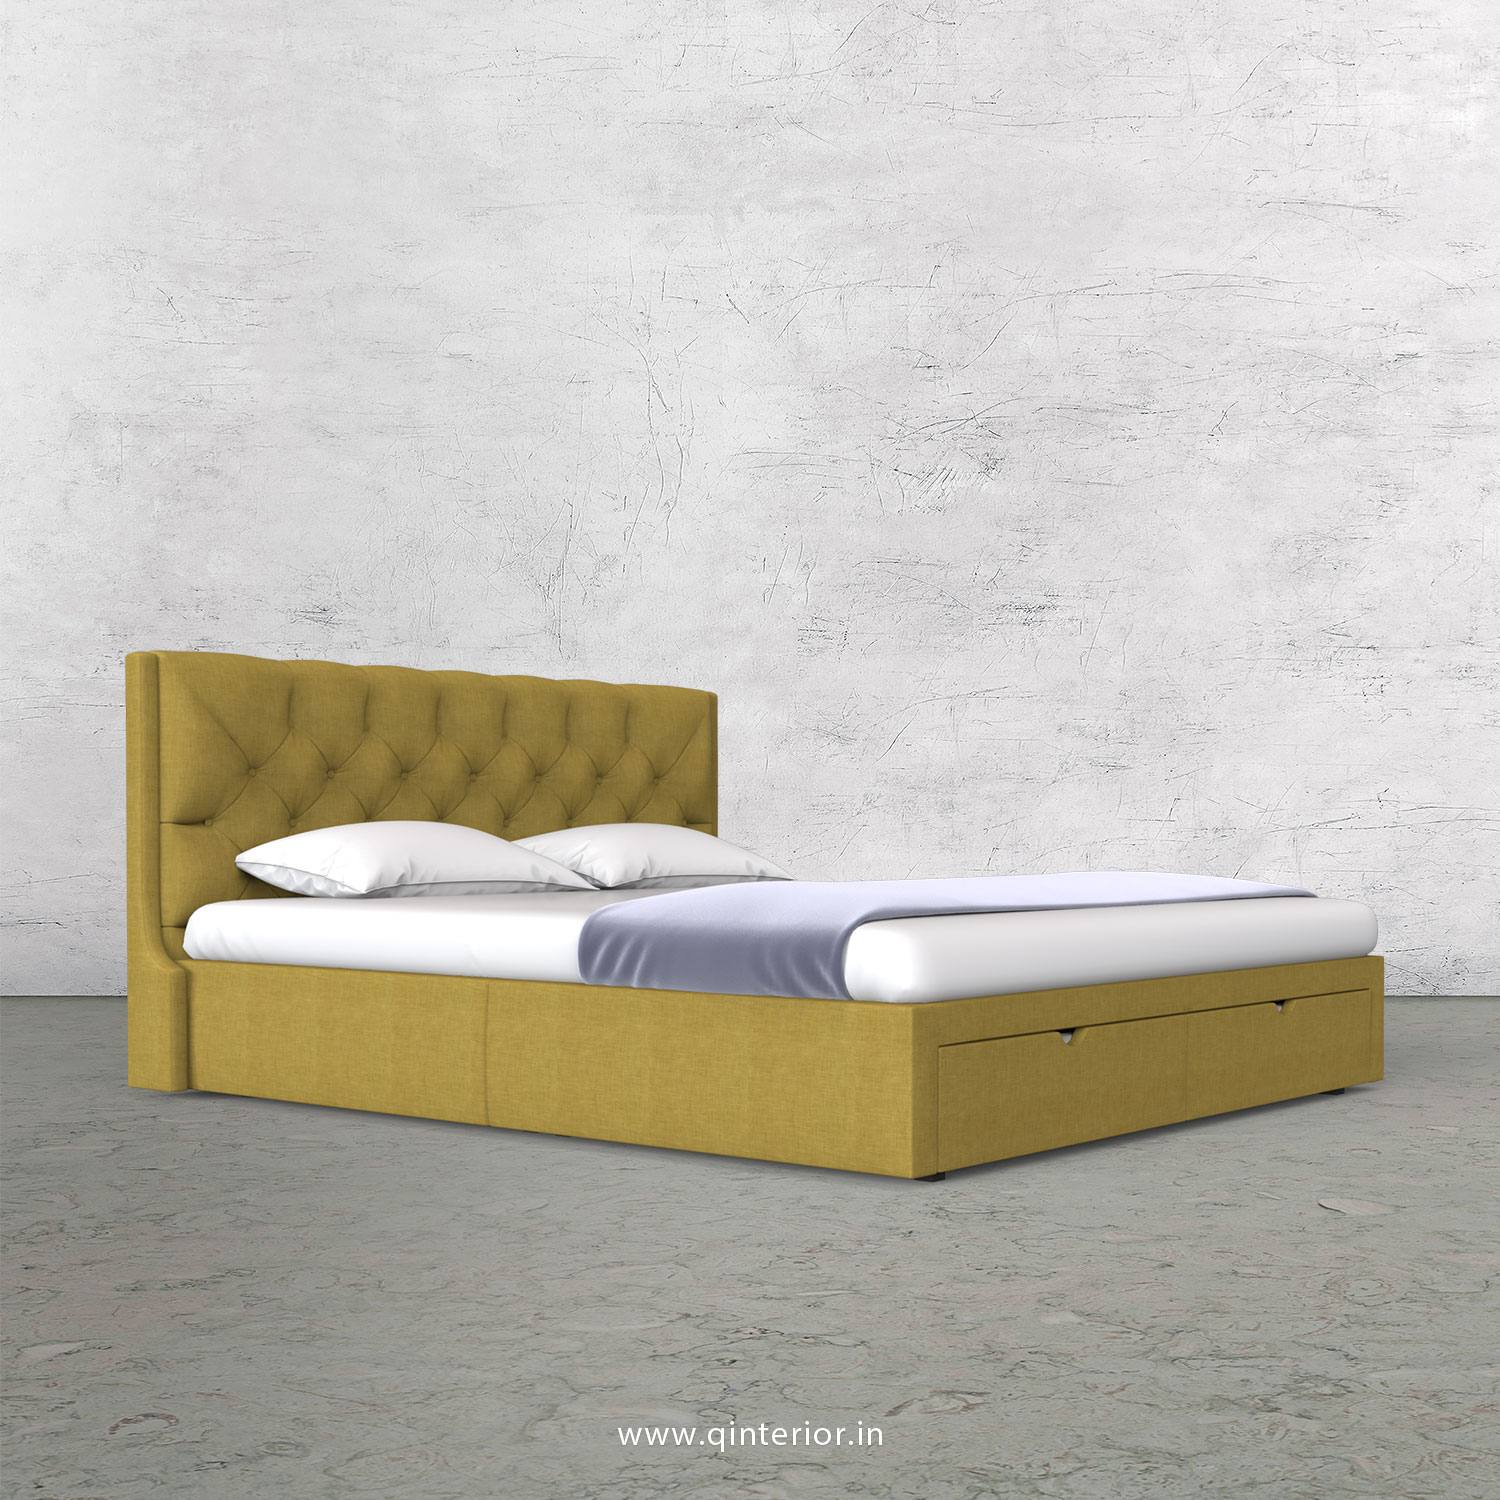 Scorpius King Size Storage Bed in Cotton Plain - KBD001 CP19